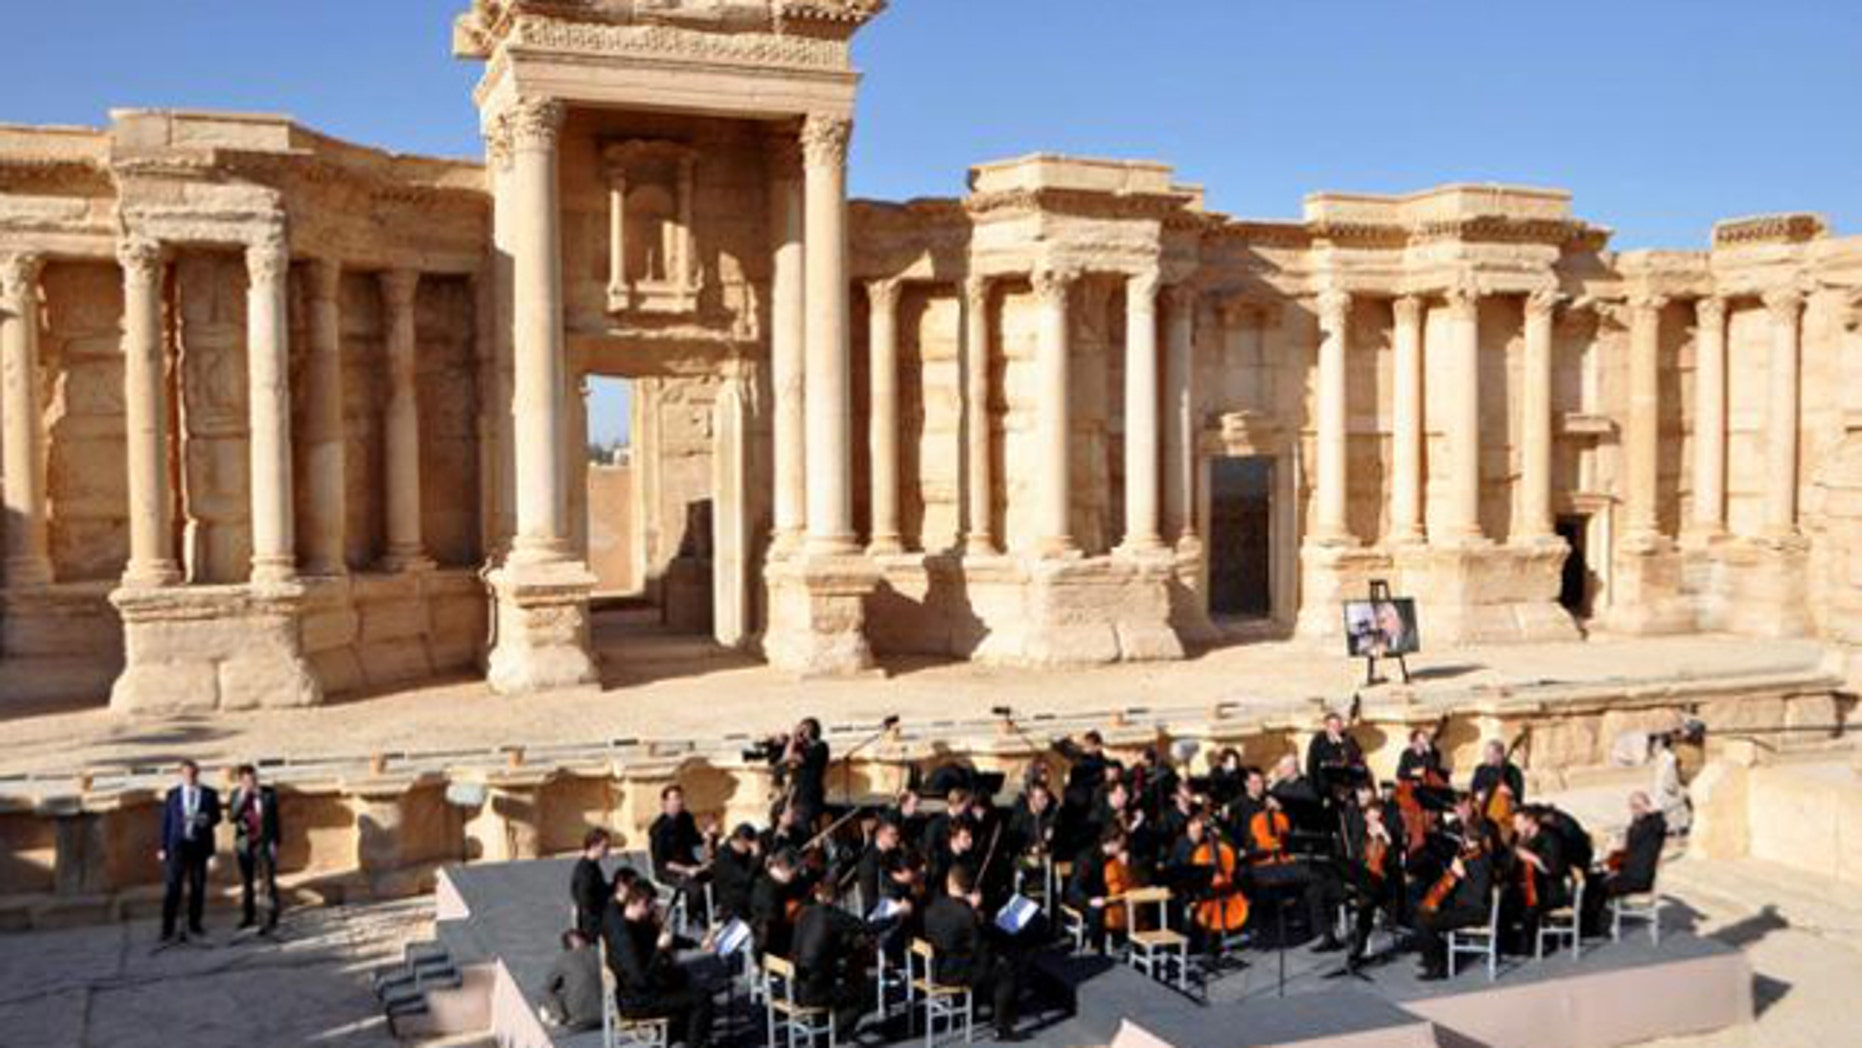 May 5, 2016: Russia's Mariinsky Theater performs at the amphitheater in Palmyra, Syria.